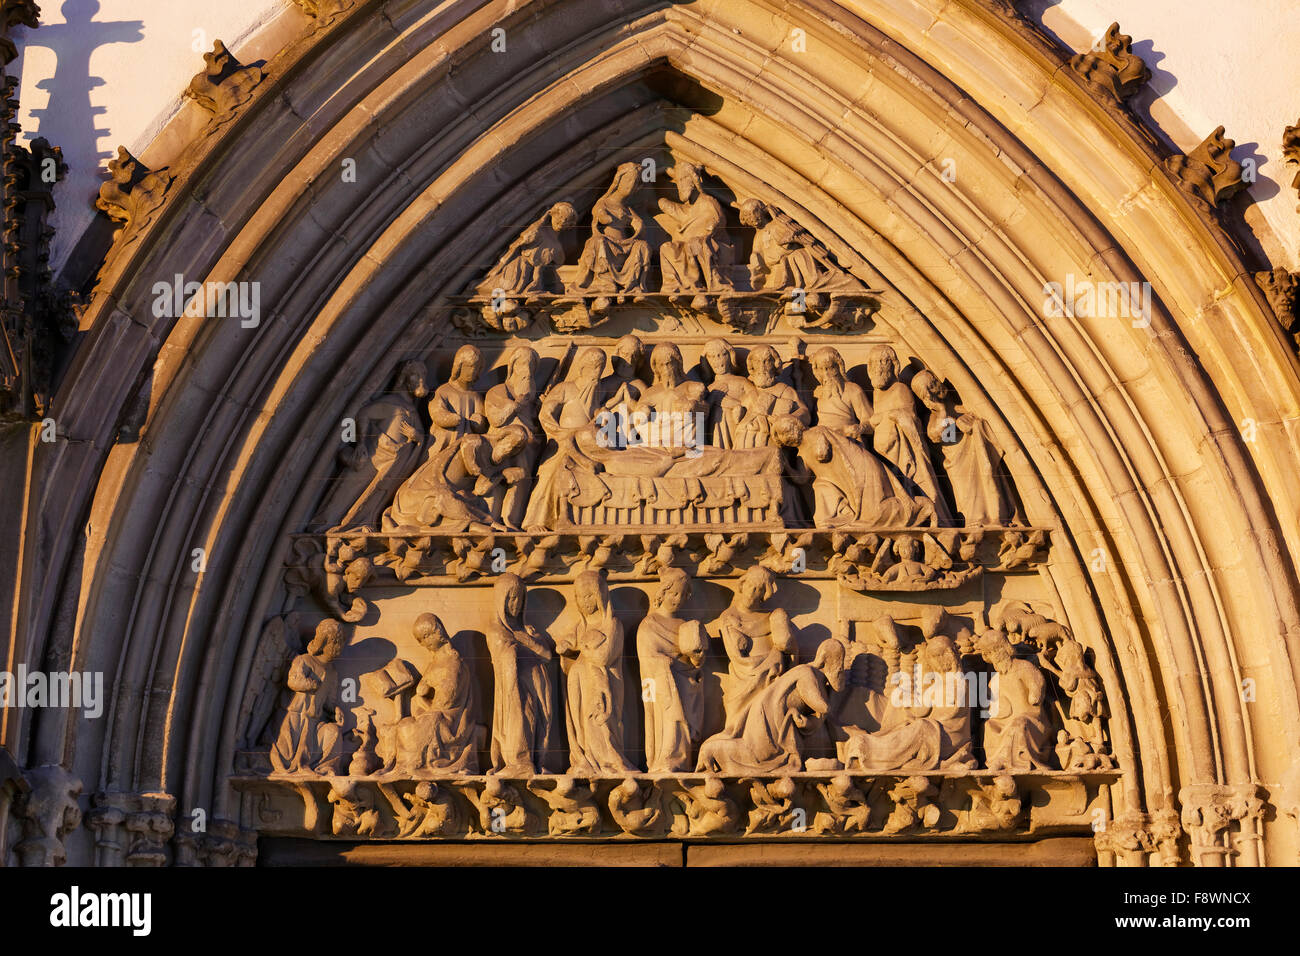 Tympanum of the Church of Our Lady, Ravensburg, Upper Swabia, Baden-Württemberg, Germany - Stock Image